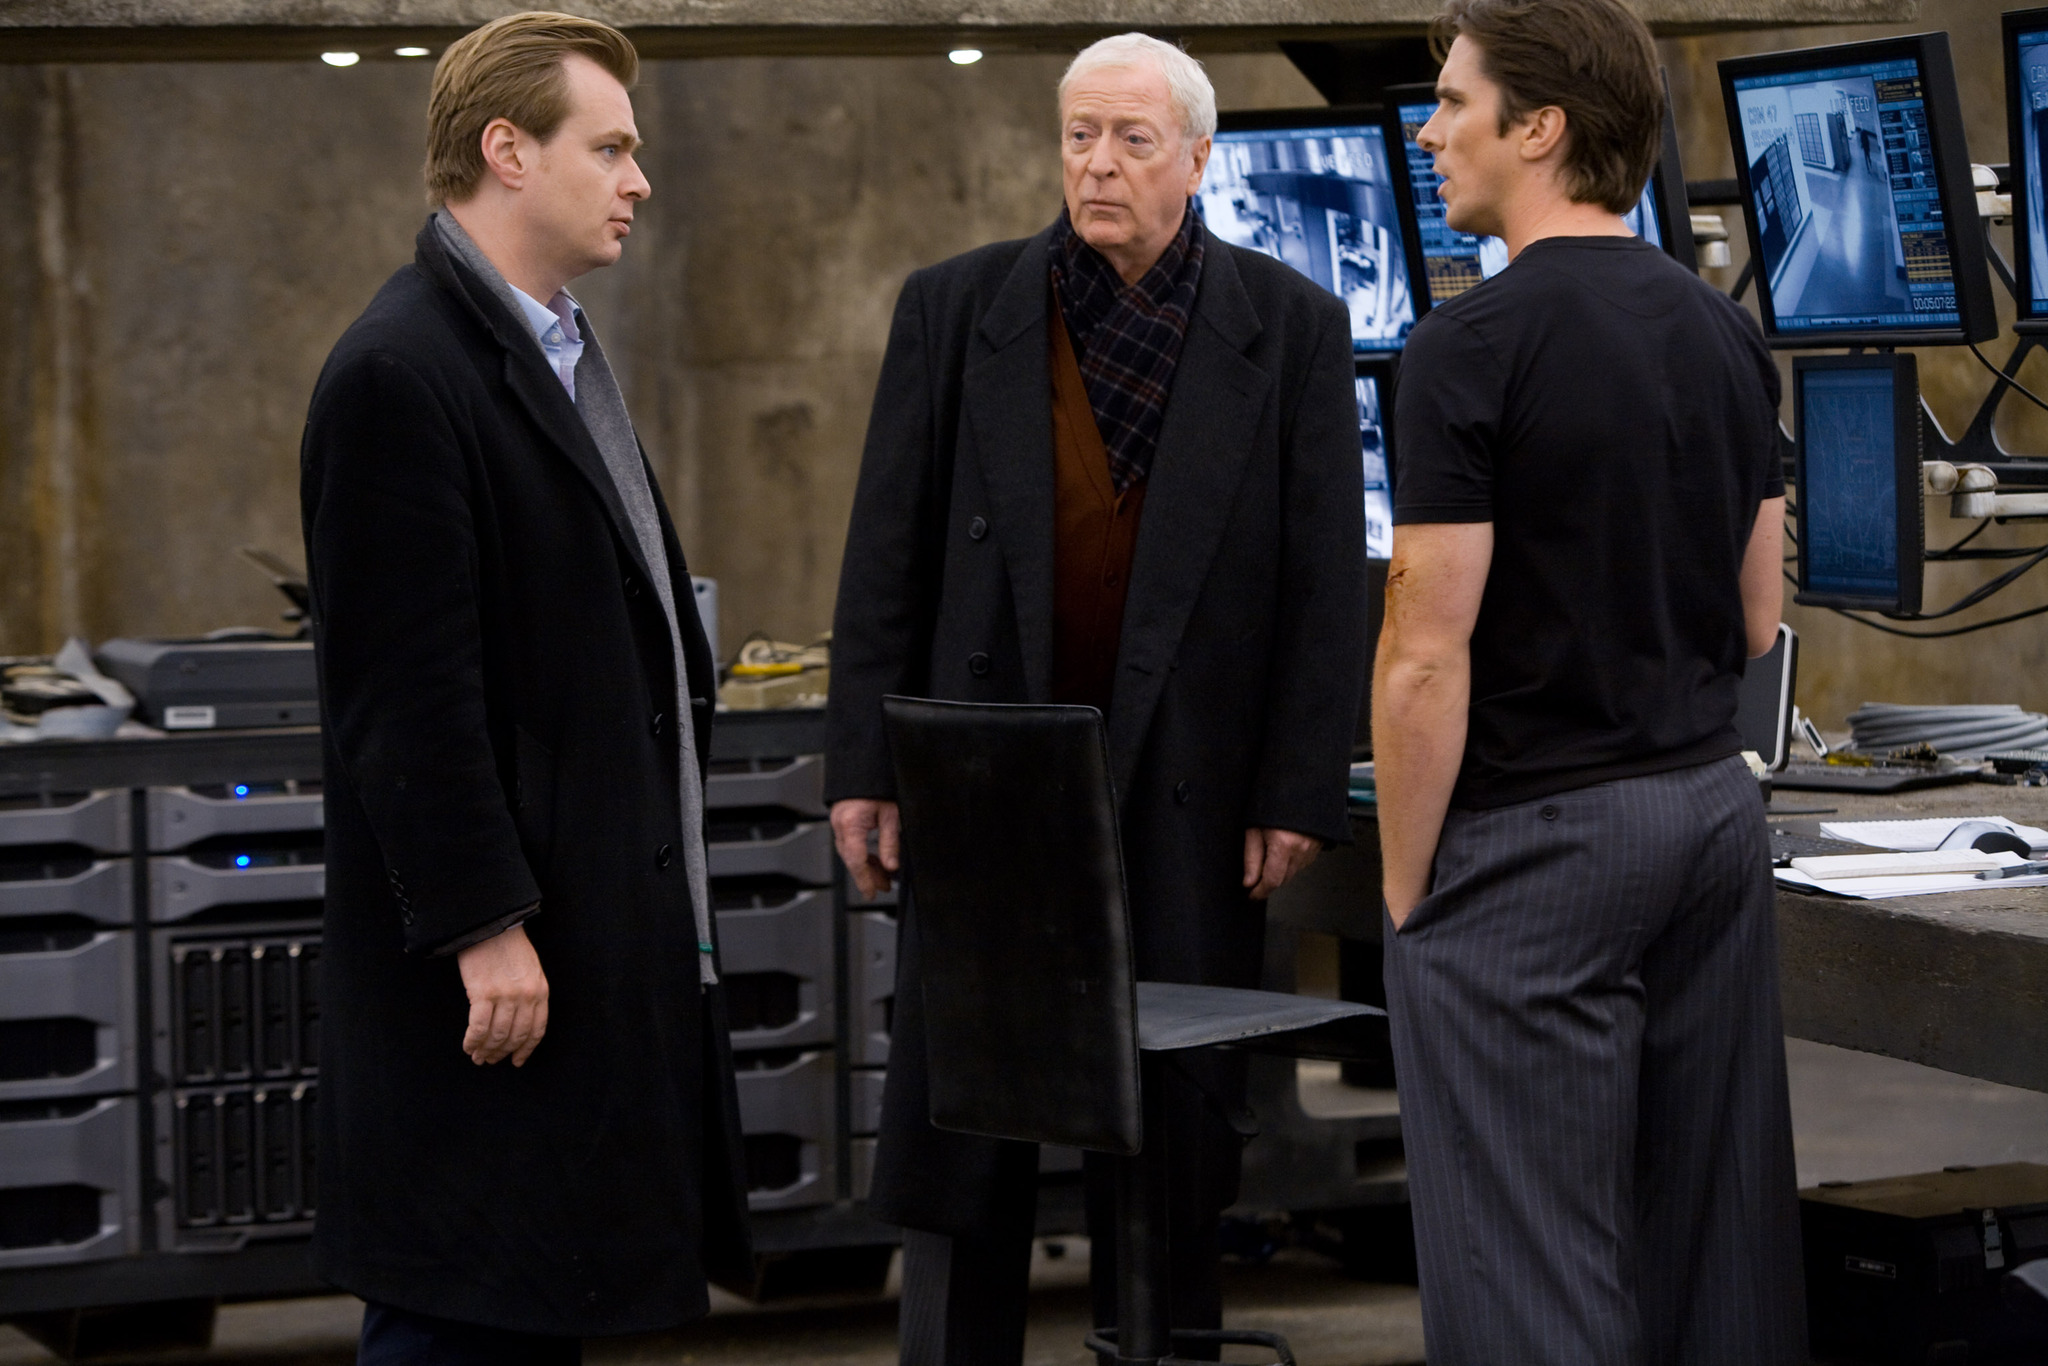 Christian Bale, Michael Caine, and Christopher Nolan in The Dark Knight (2008)